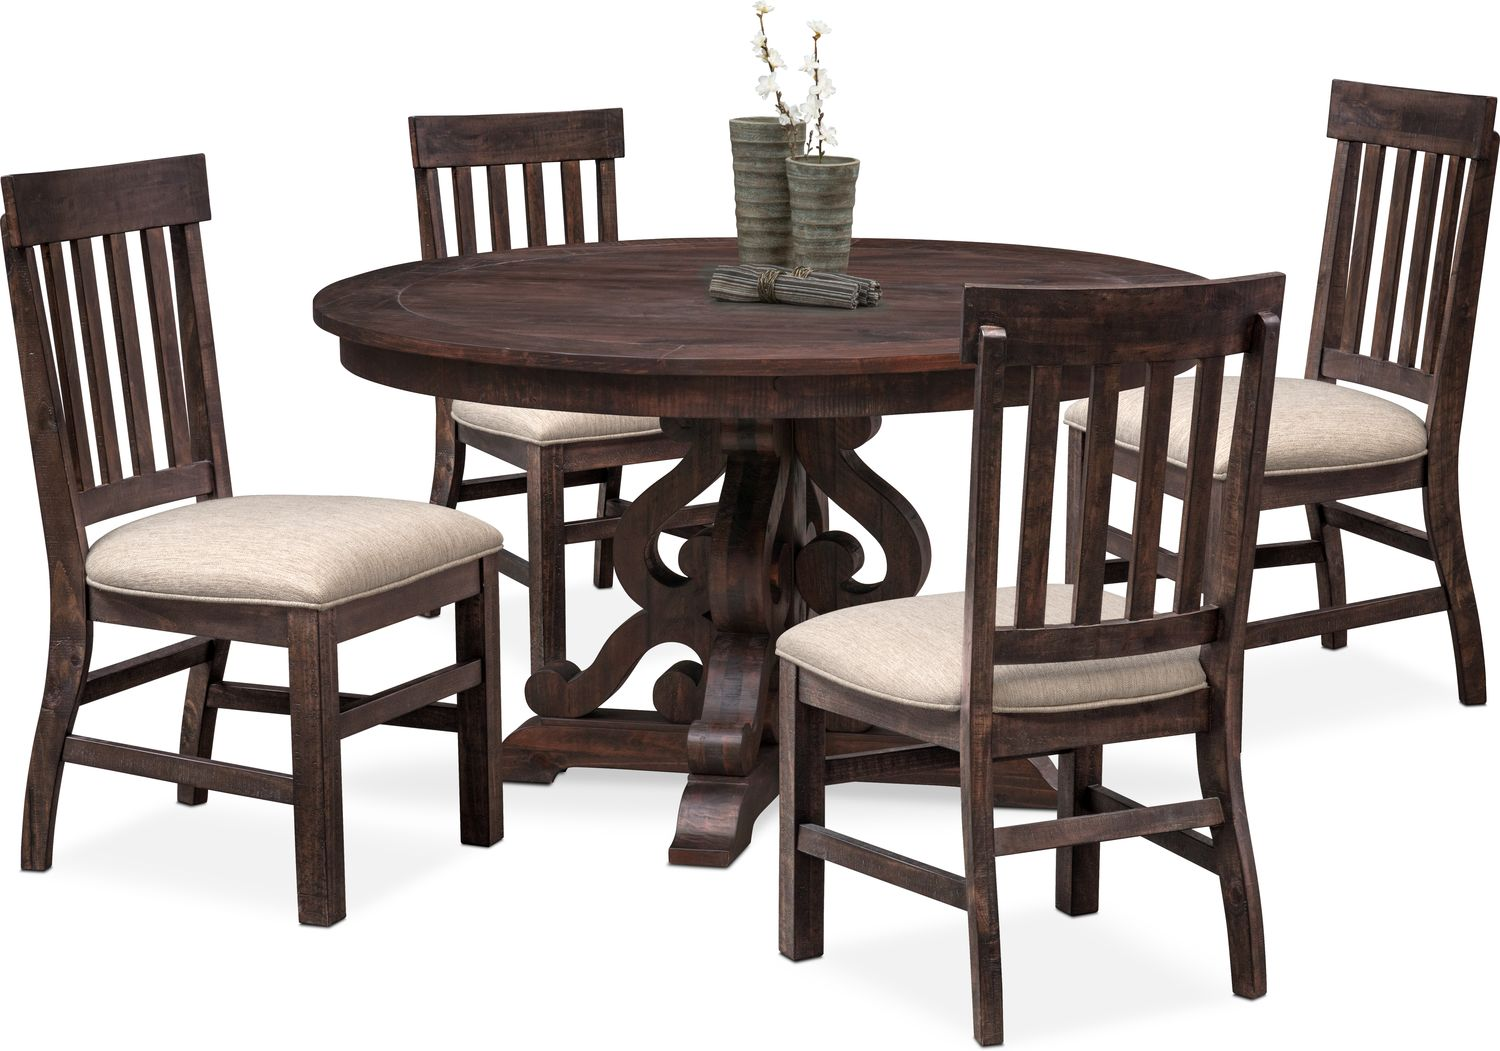 Charthouse Round Dining Table And 4 Side Chairs   Charcoal ...